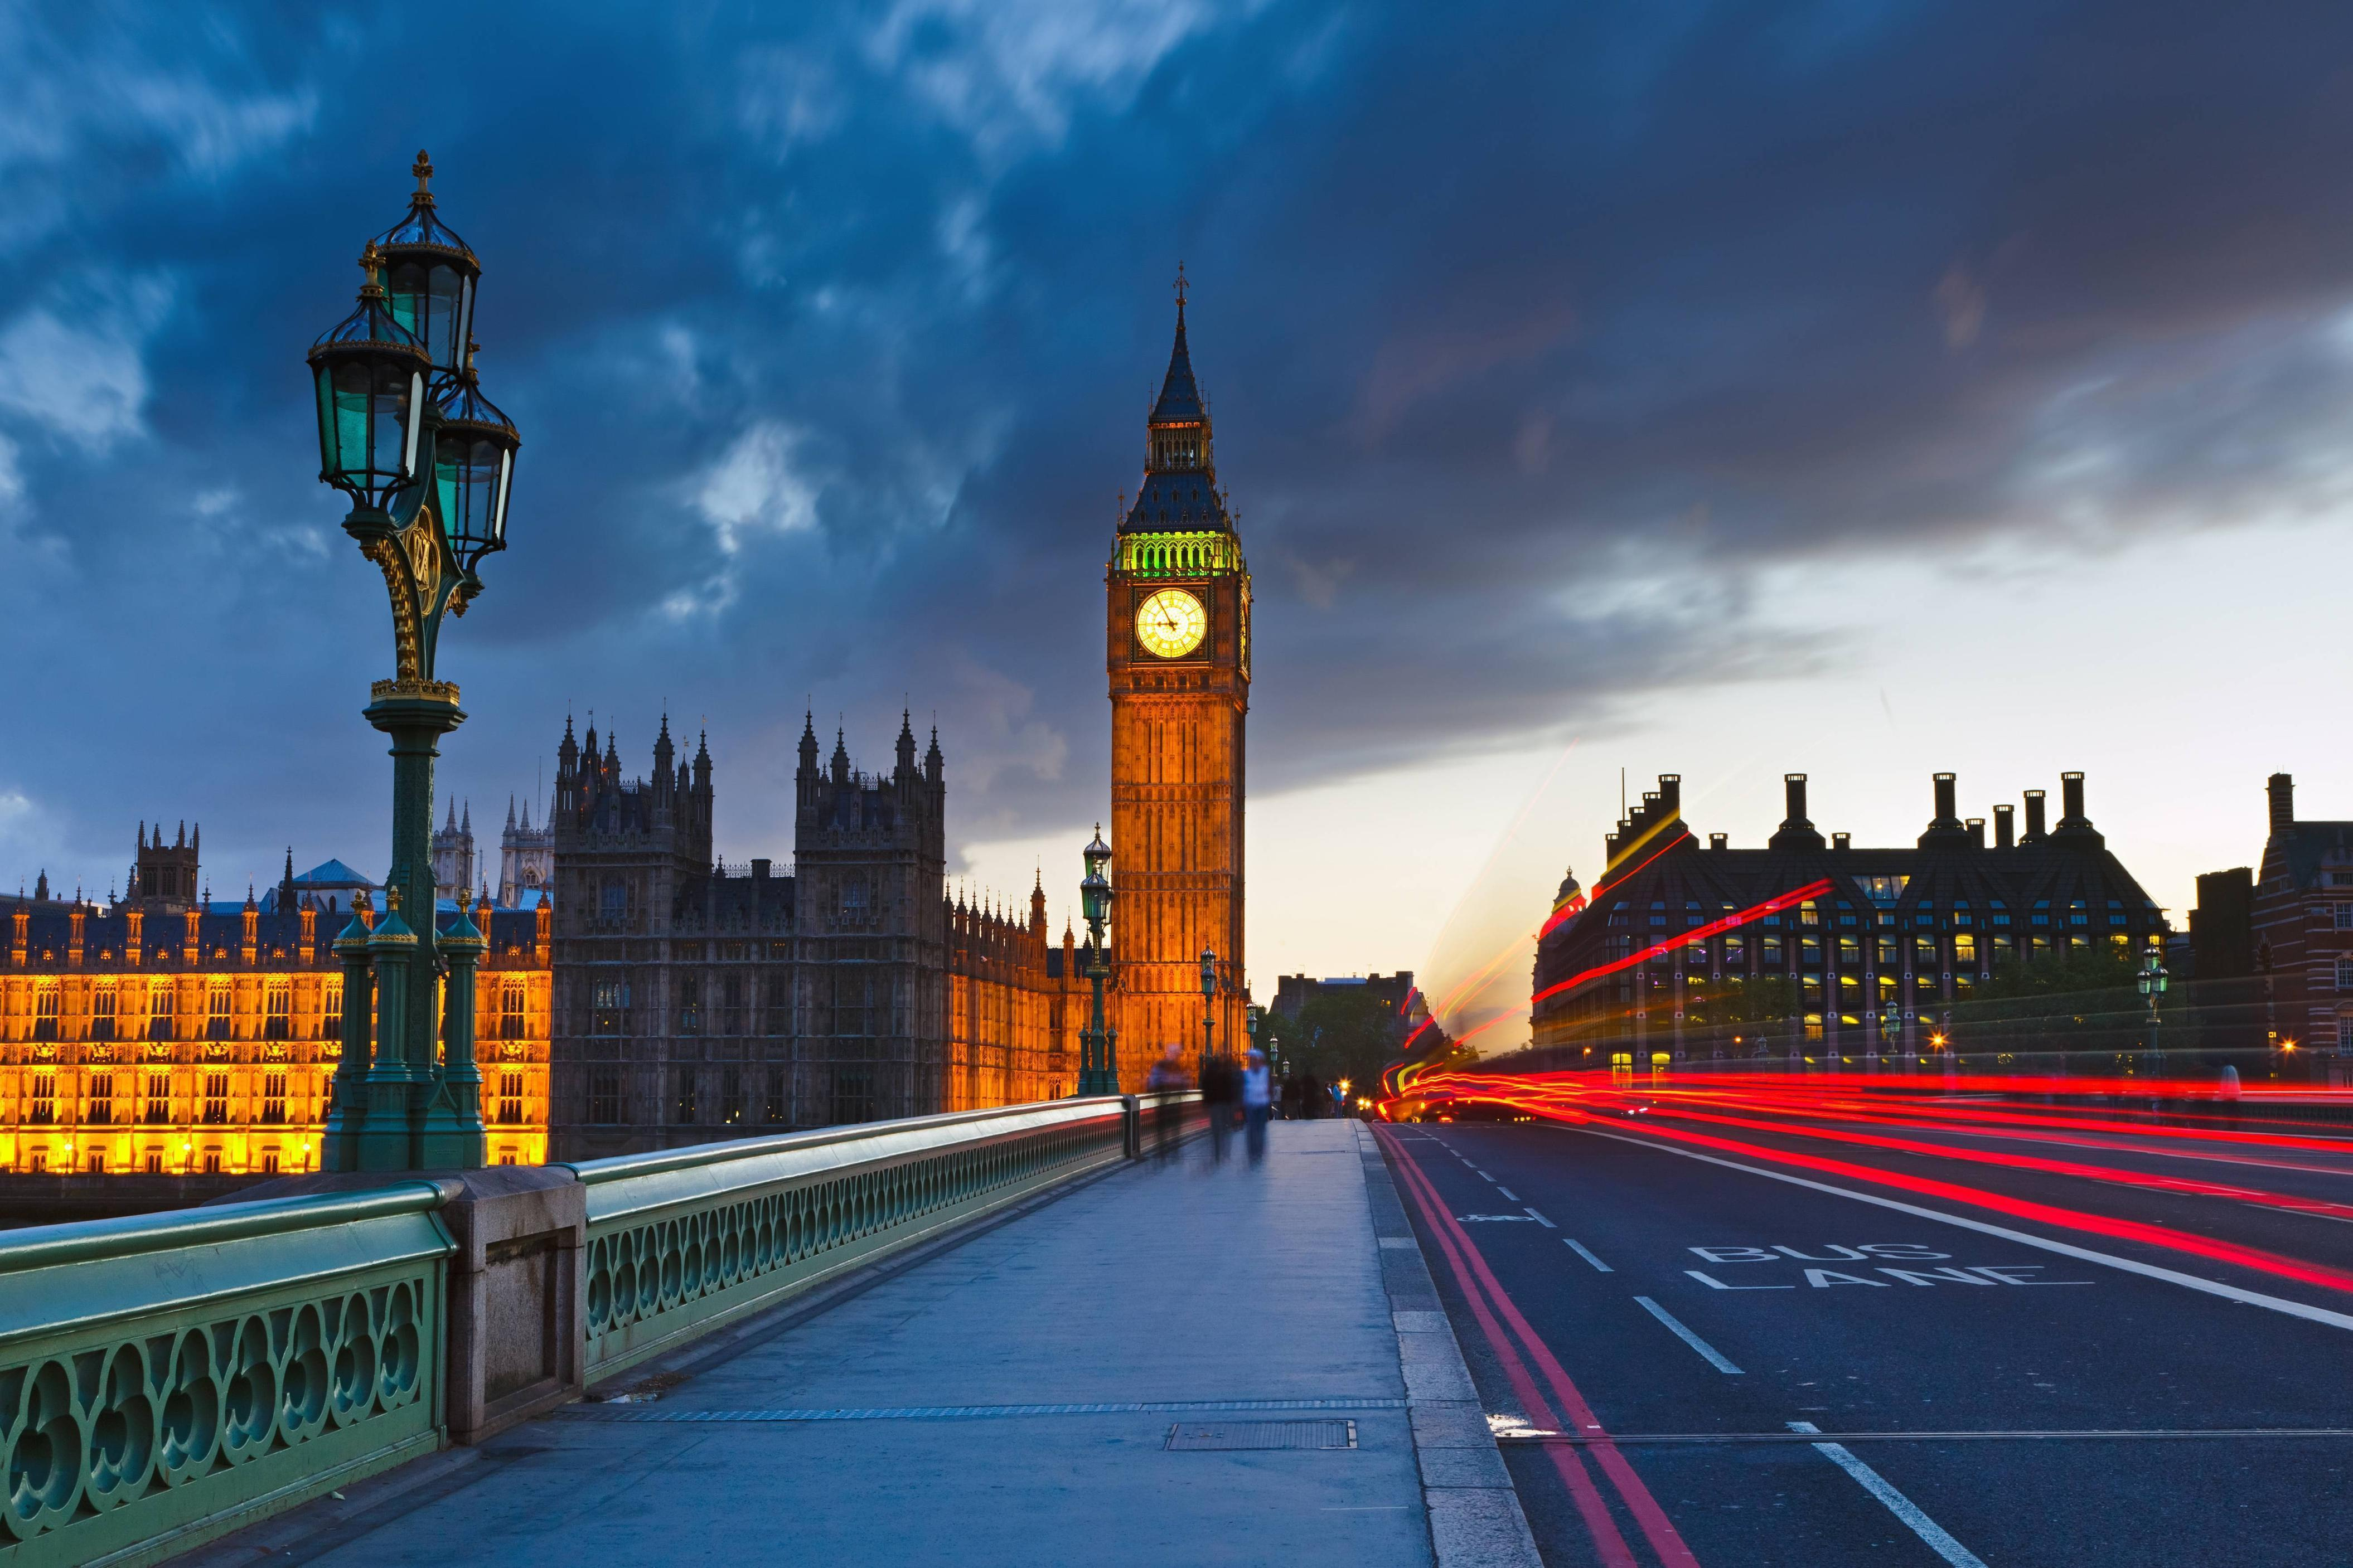 Download wallpapers Big Ben at night, London, city, England free